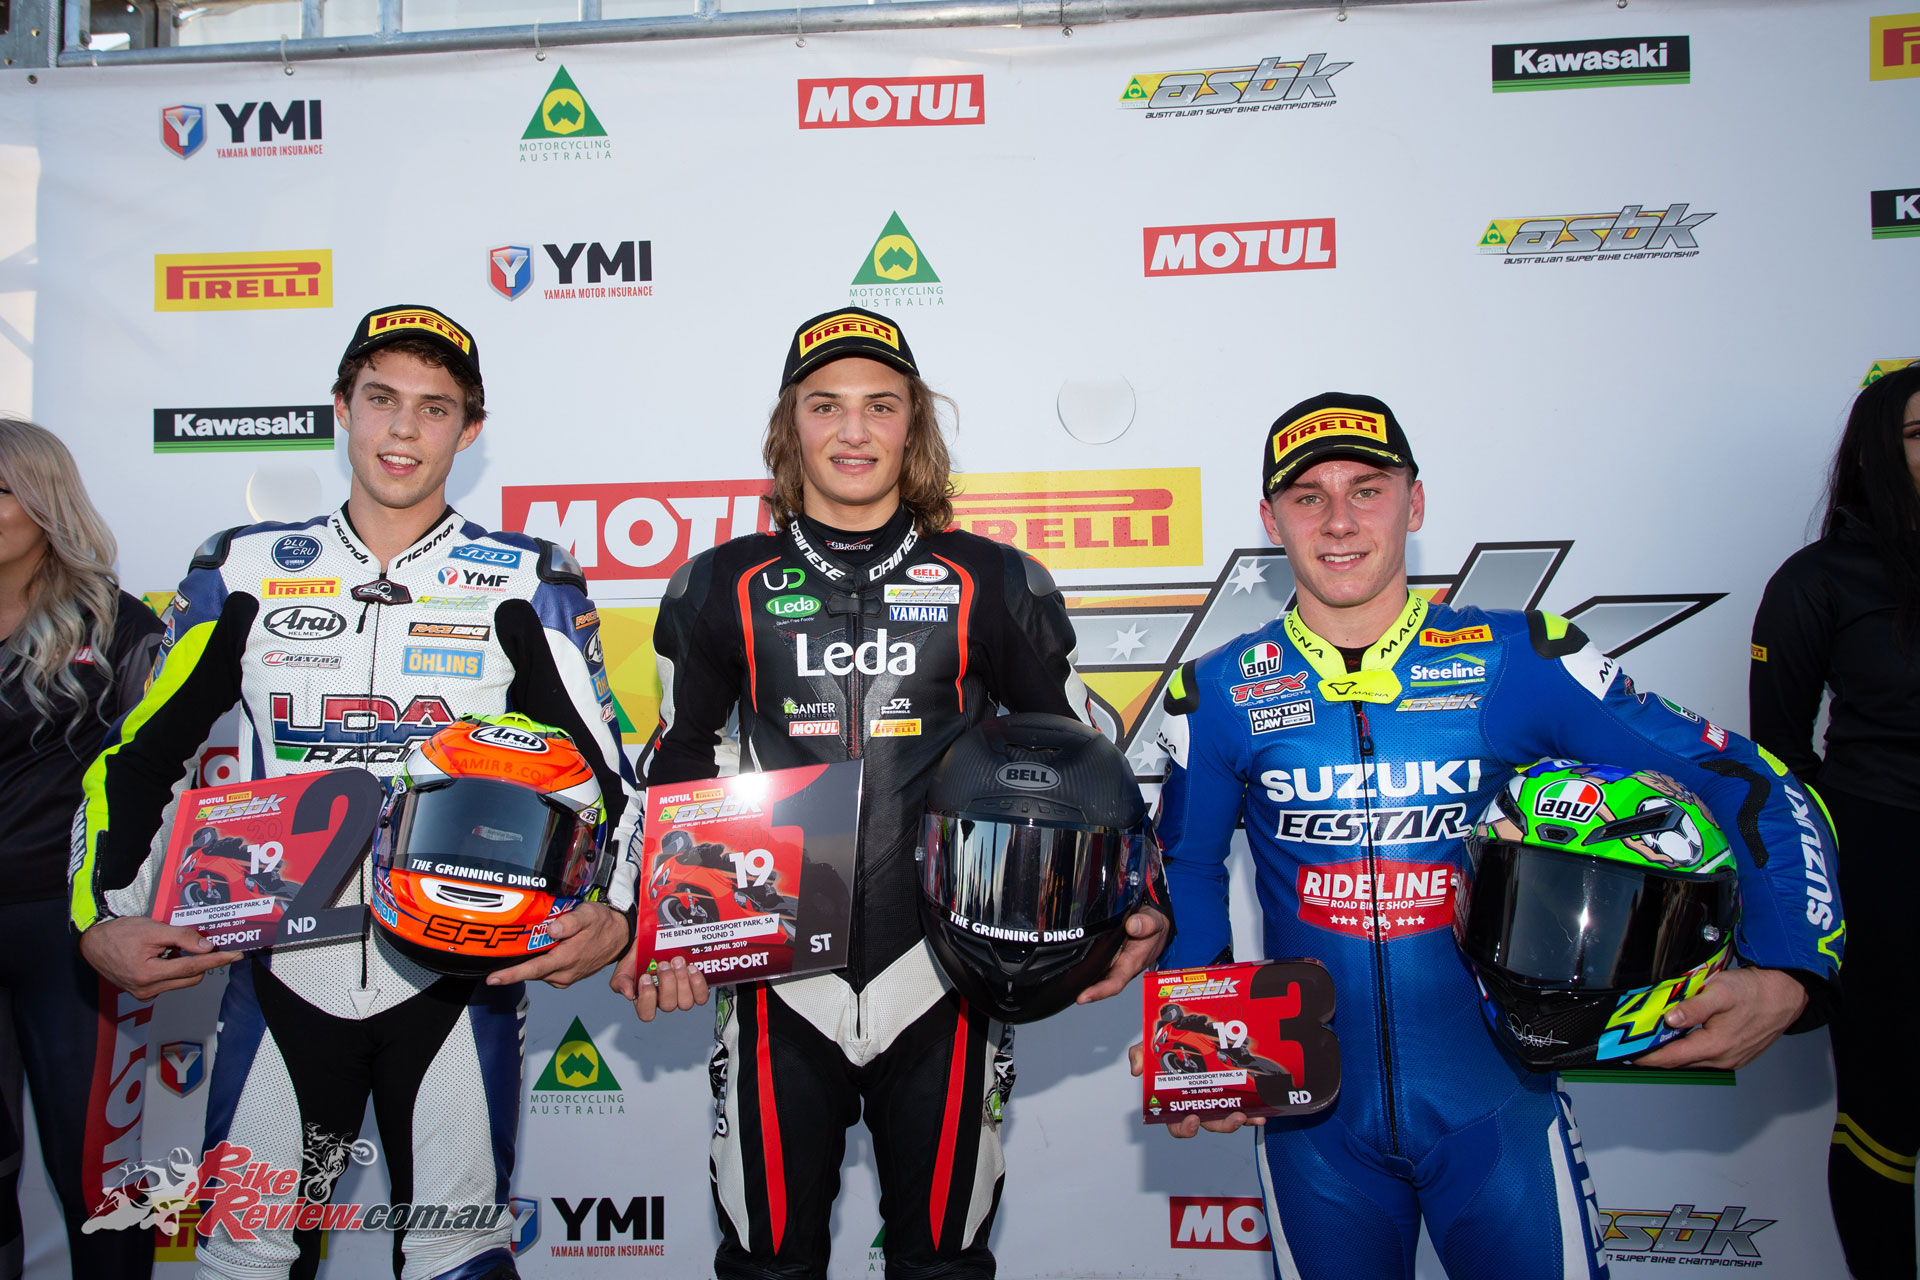 Australian Supersport Round Podium - Image by TBG Sport